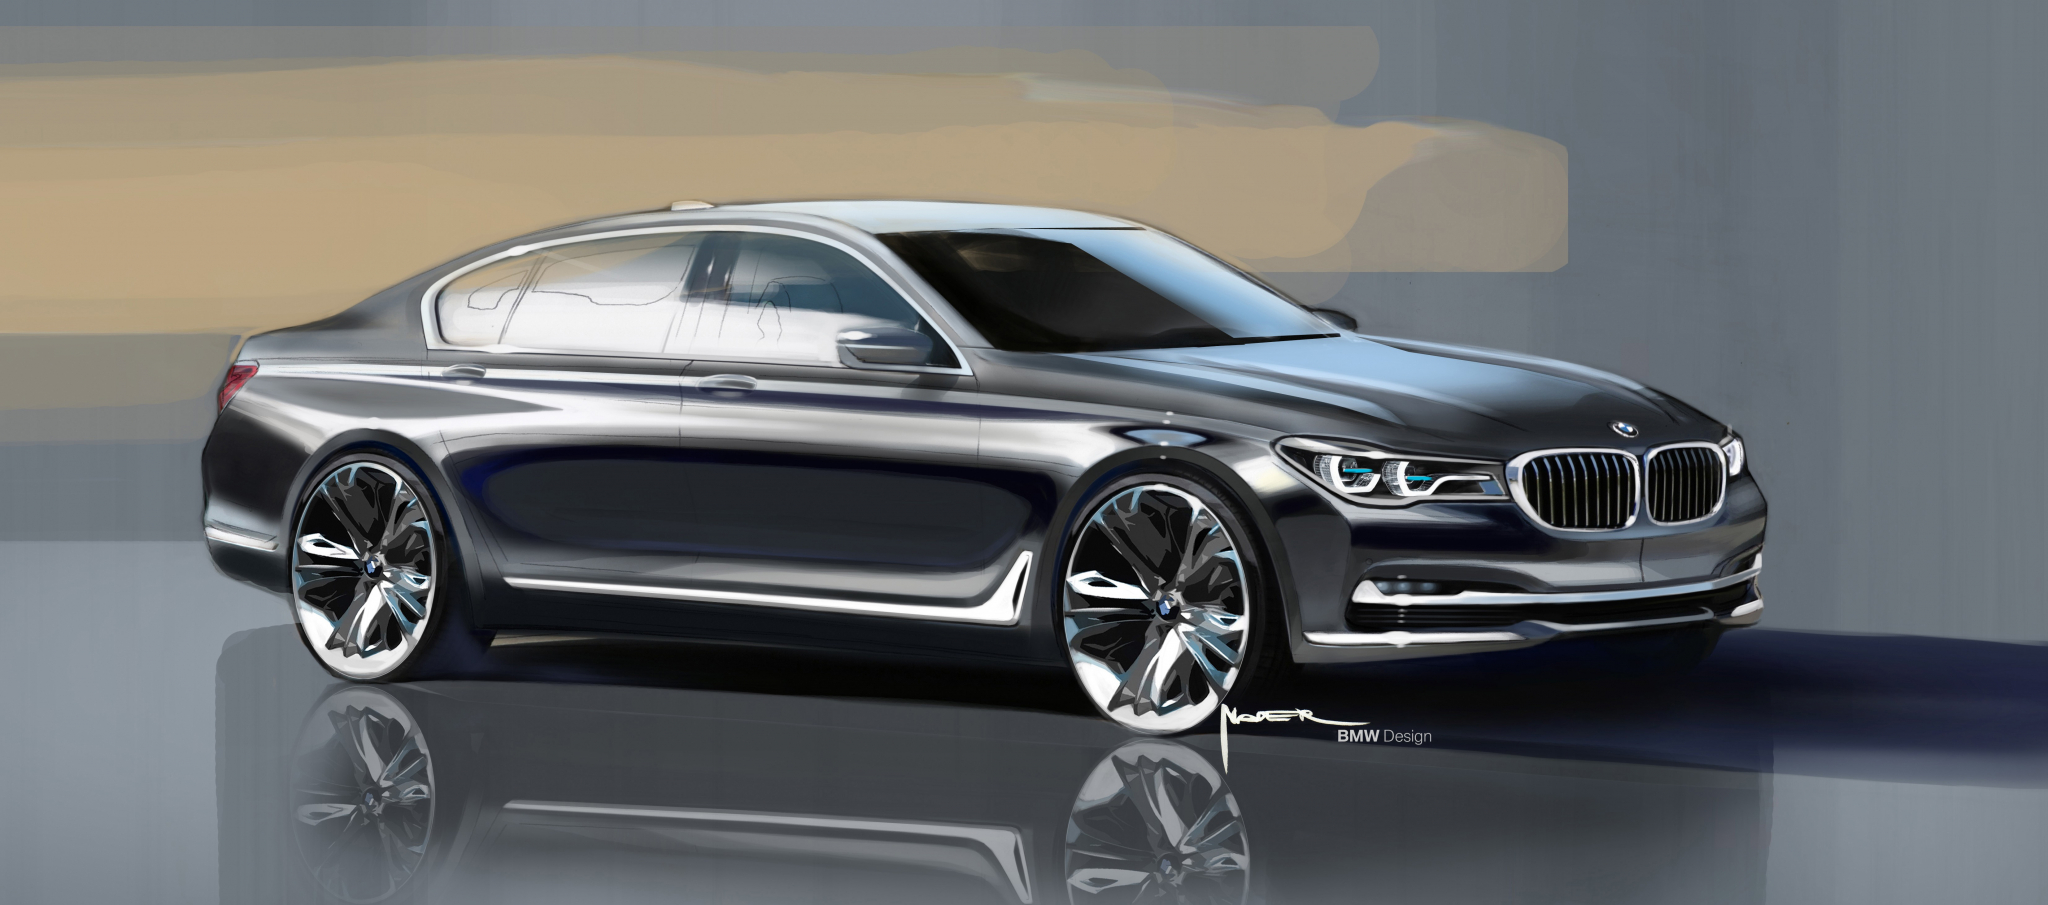 bmw 7 series 2016 hd wallpapers free download. Black Bedroom Furniture Sets. Home Design Ideas